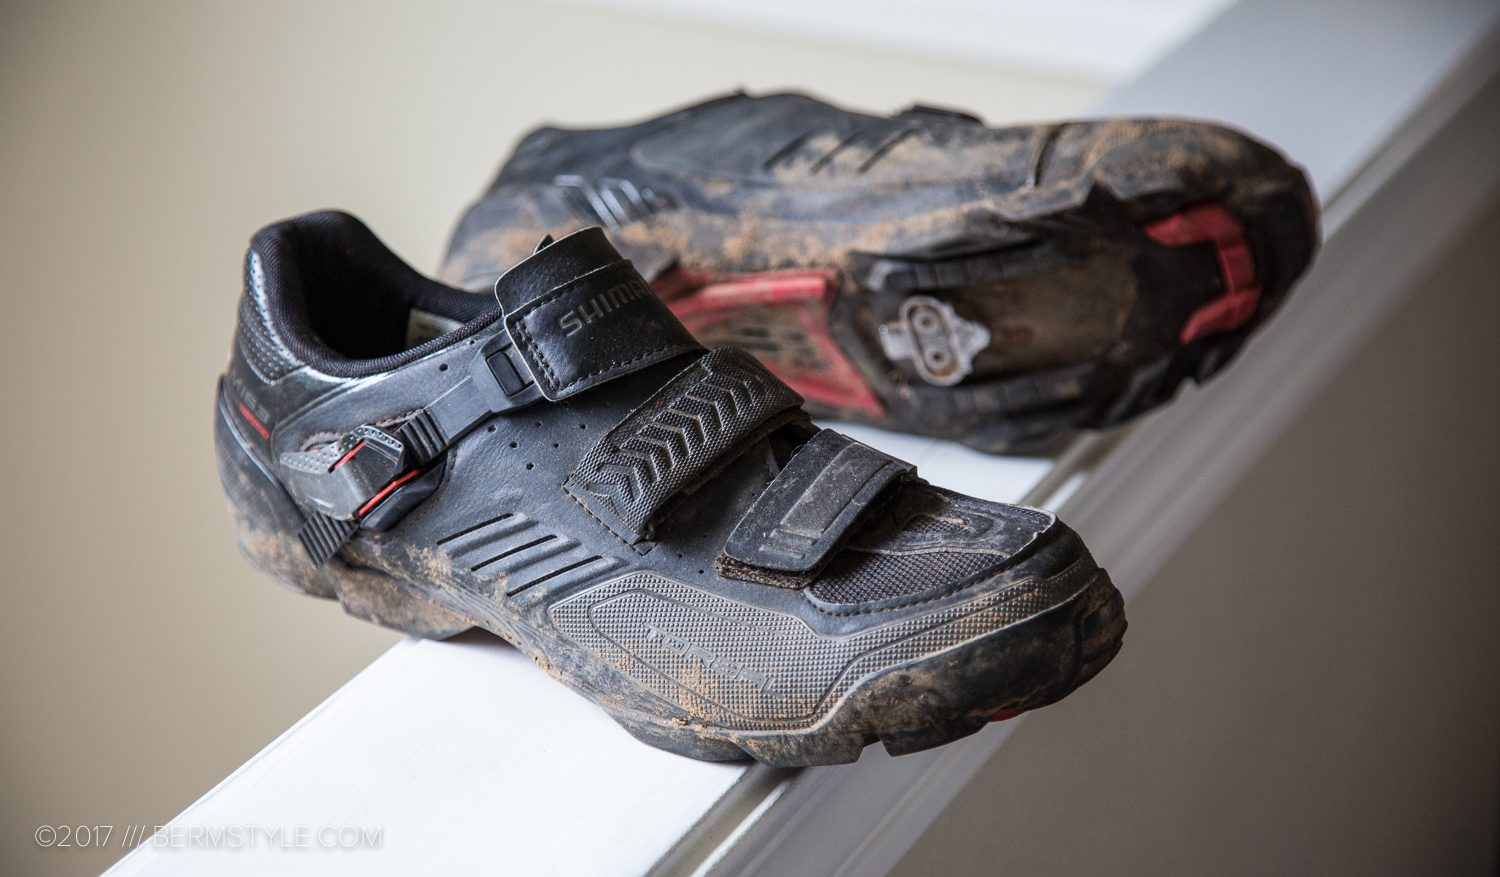 Shimano M163 mountain bike shoes